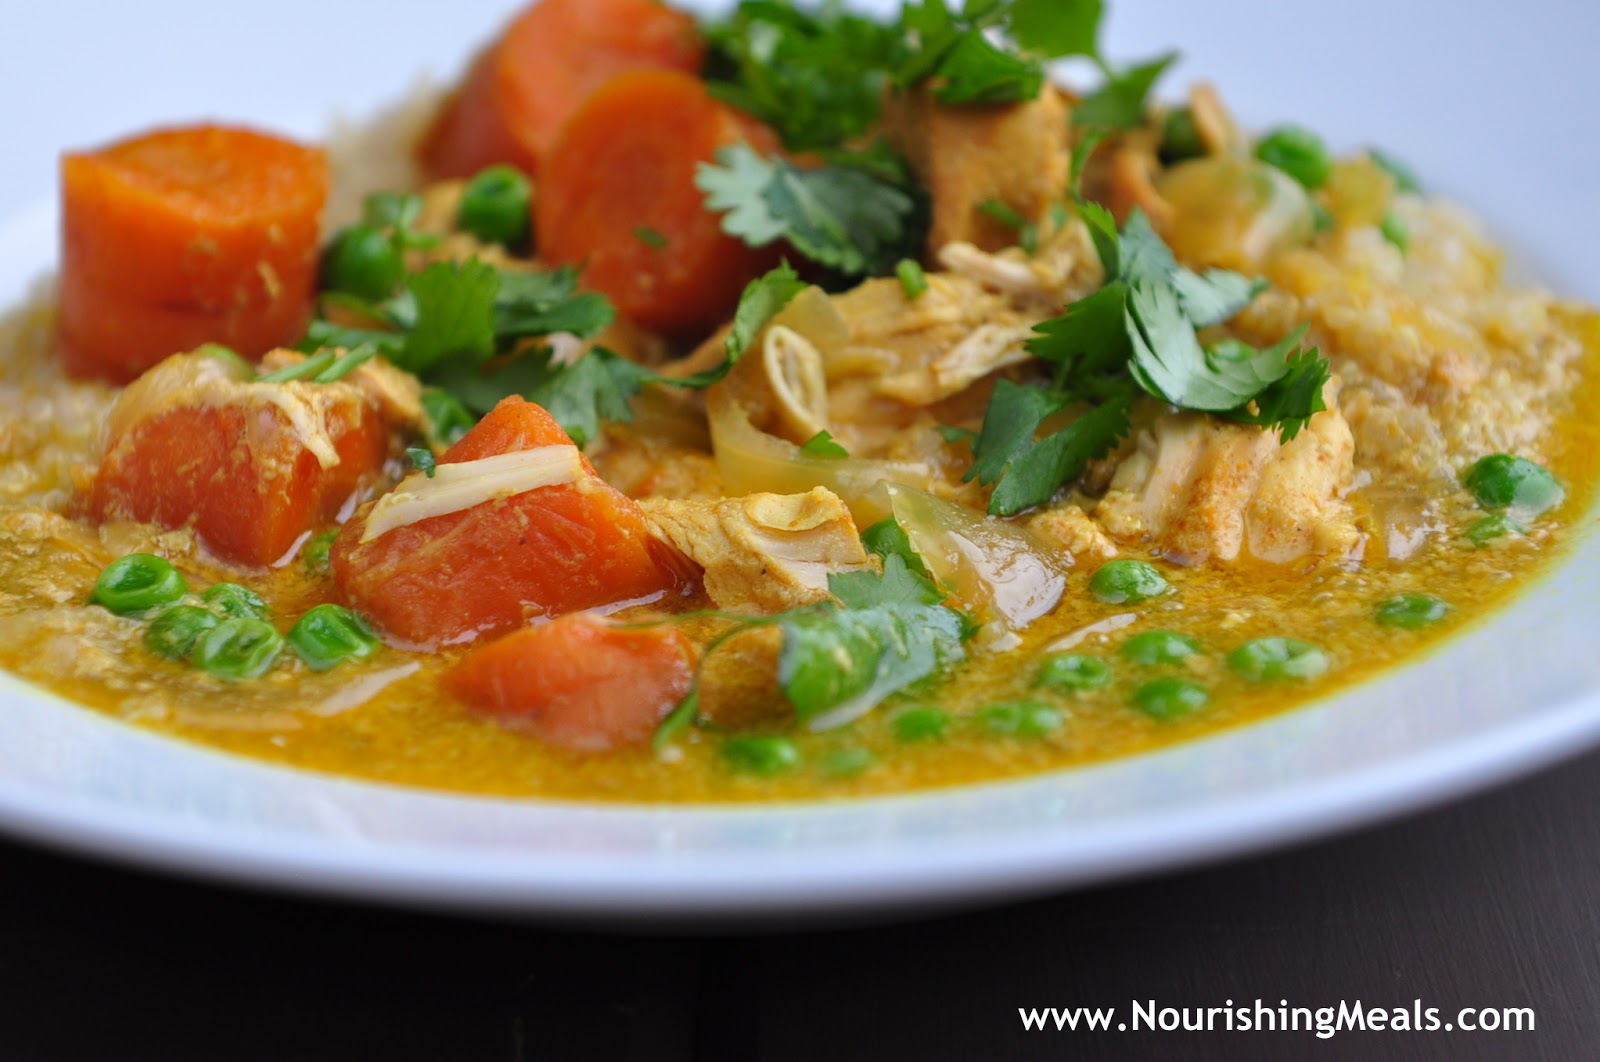 Nourishing Meals®: Simple Slow-Cooked Chicken Curry